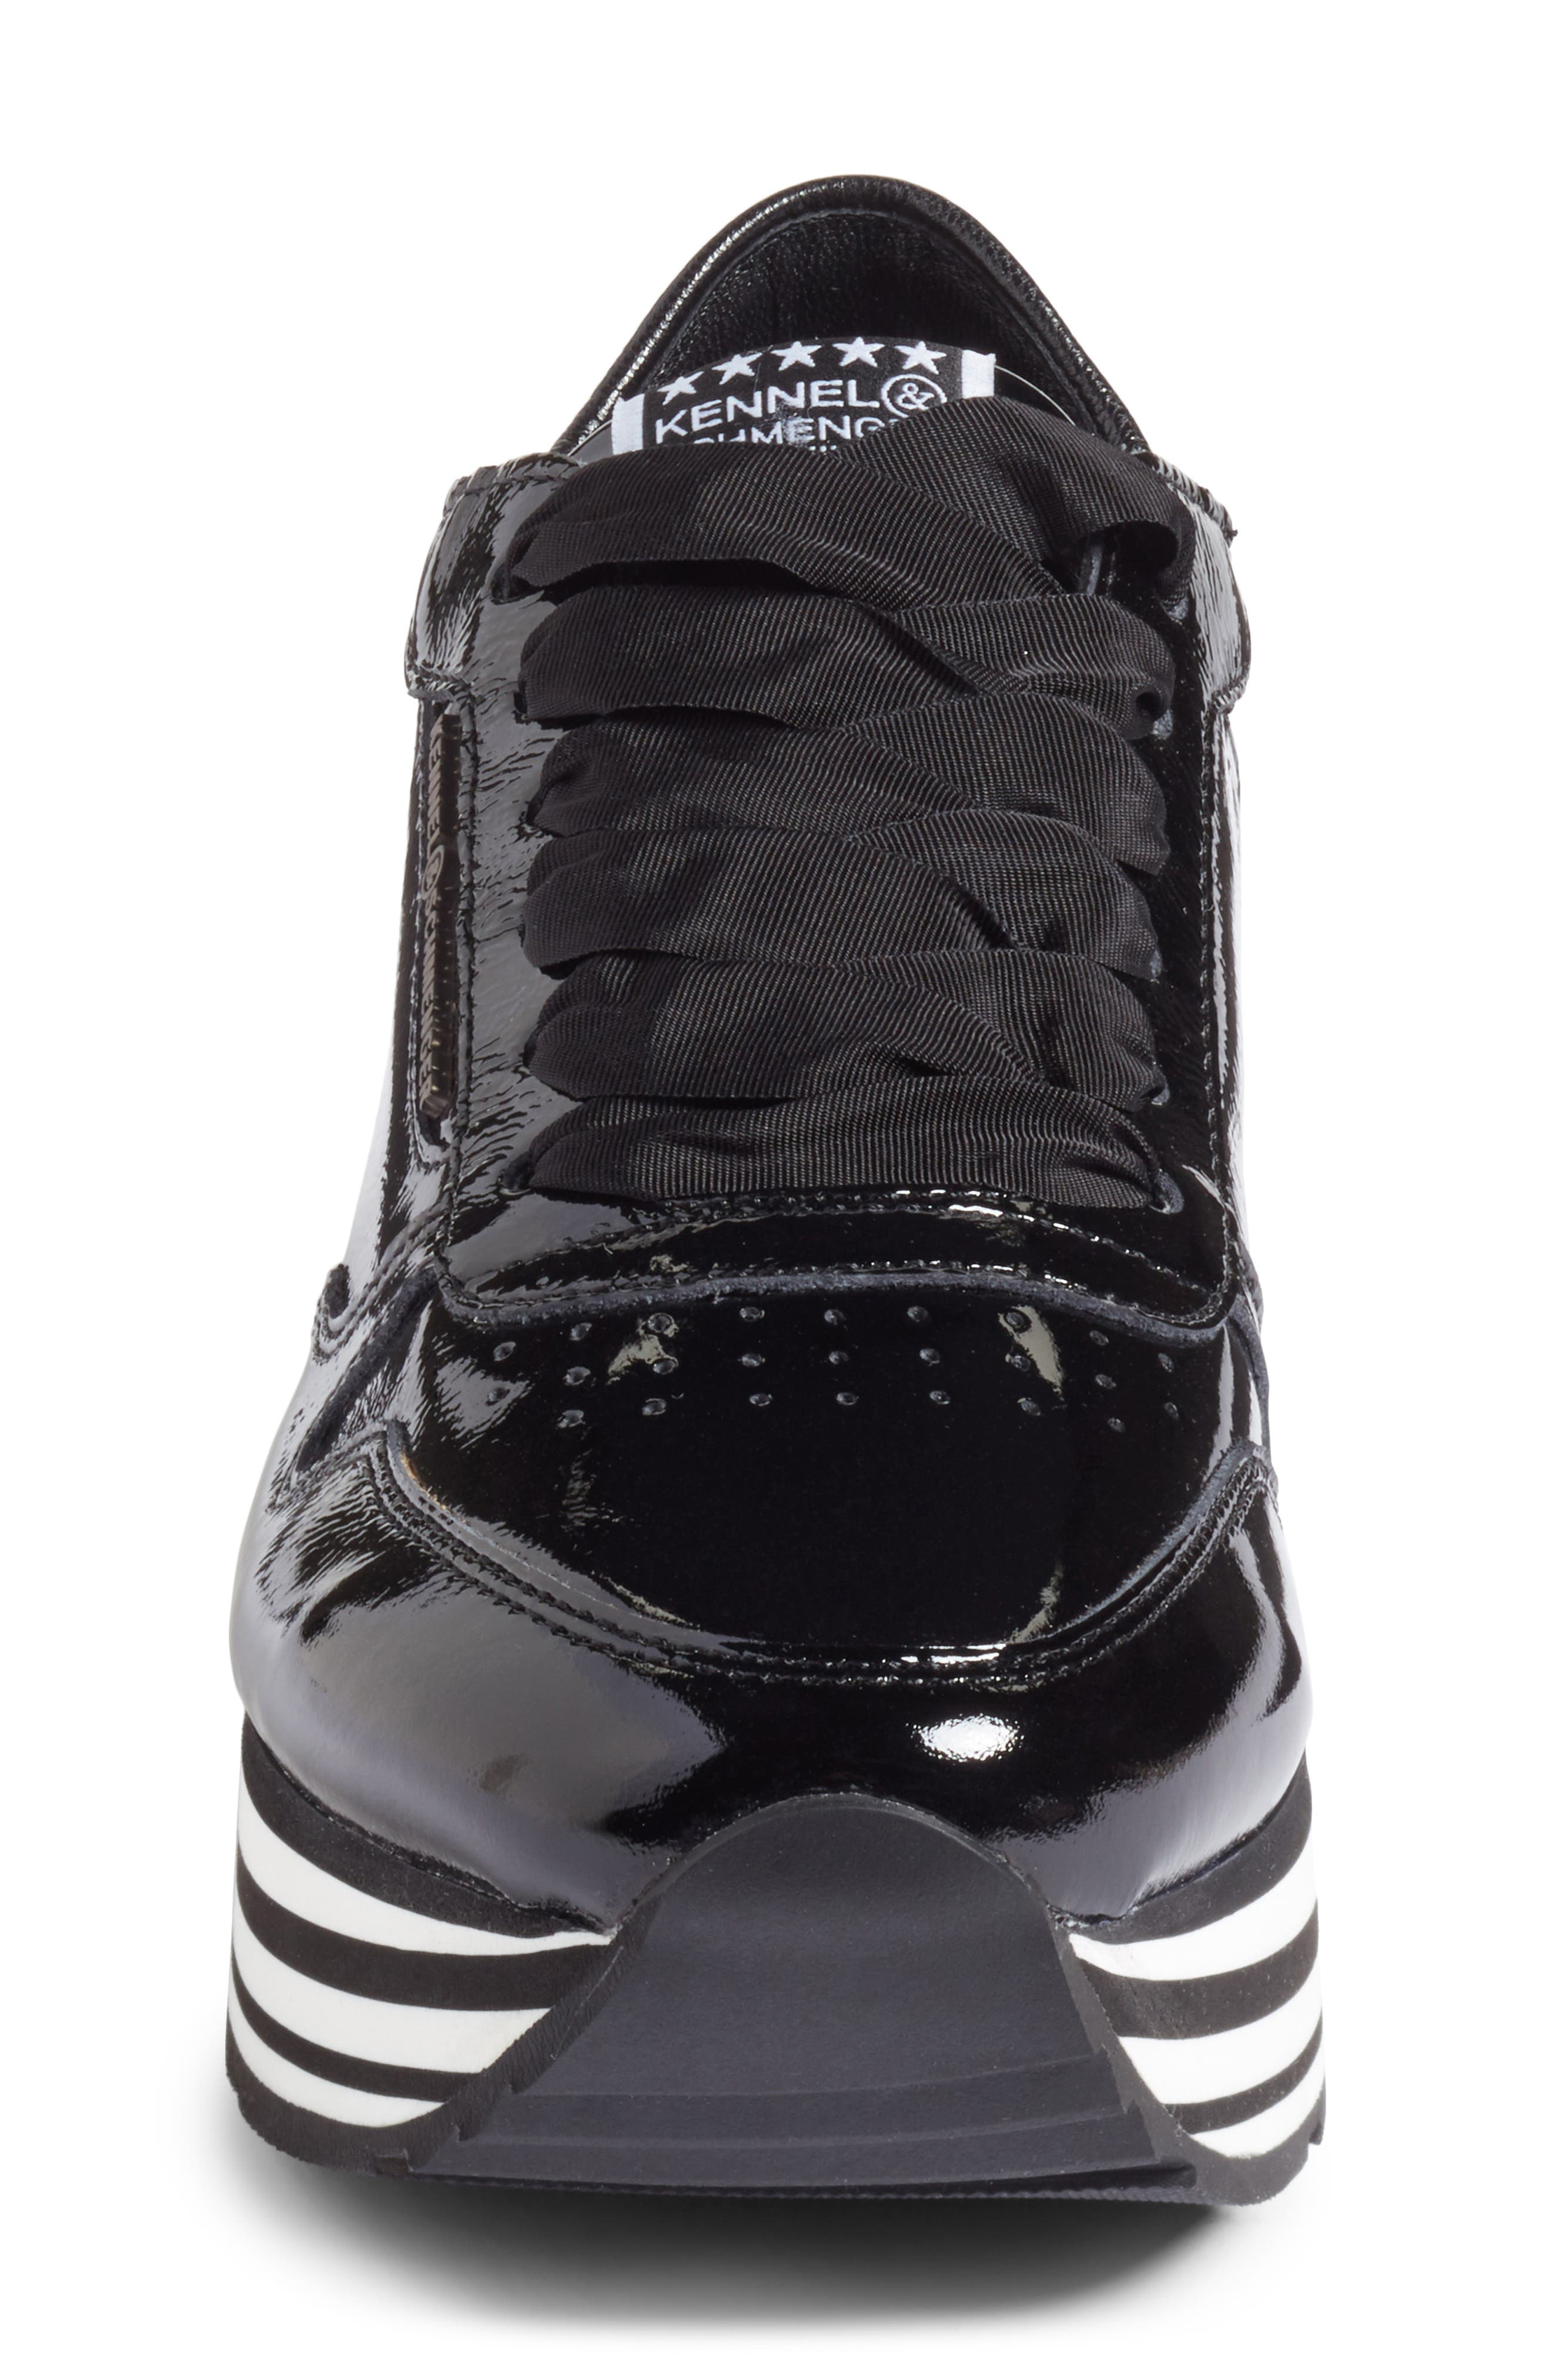 Kennel & Schmenger Nova Patent Leather Sneaker,                             Alternate thumbnail 4, color,                             001